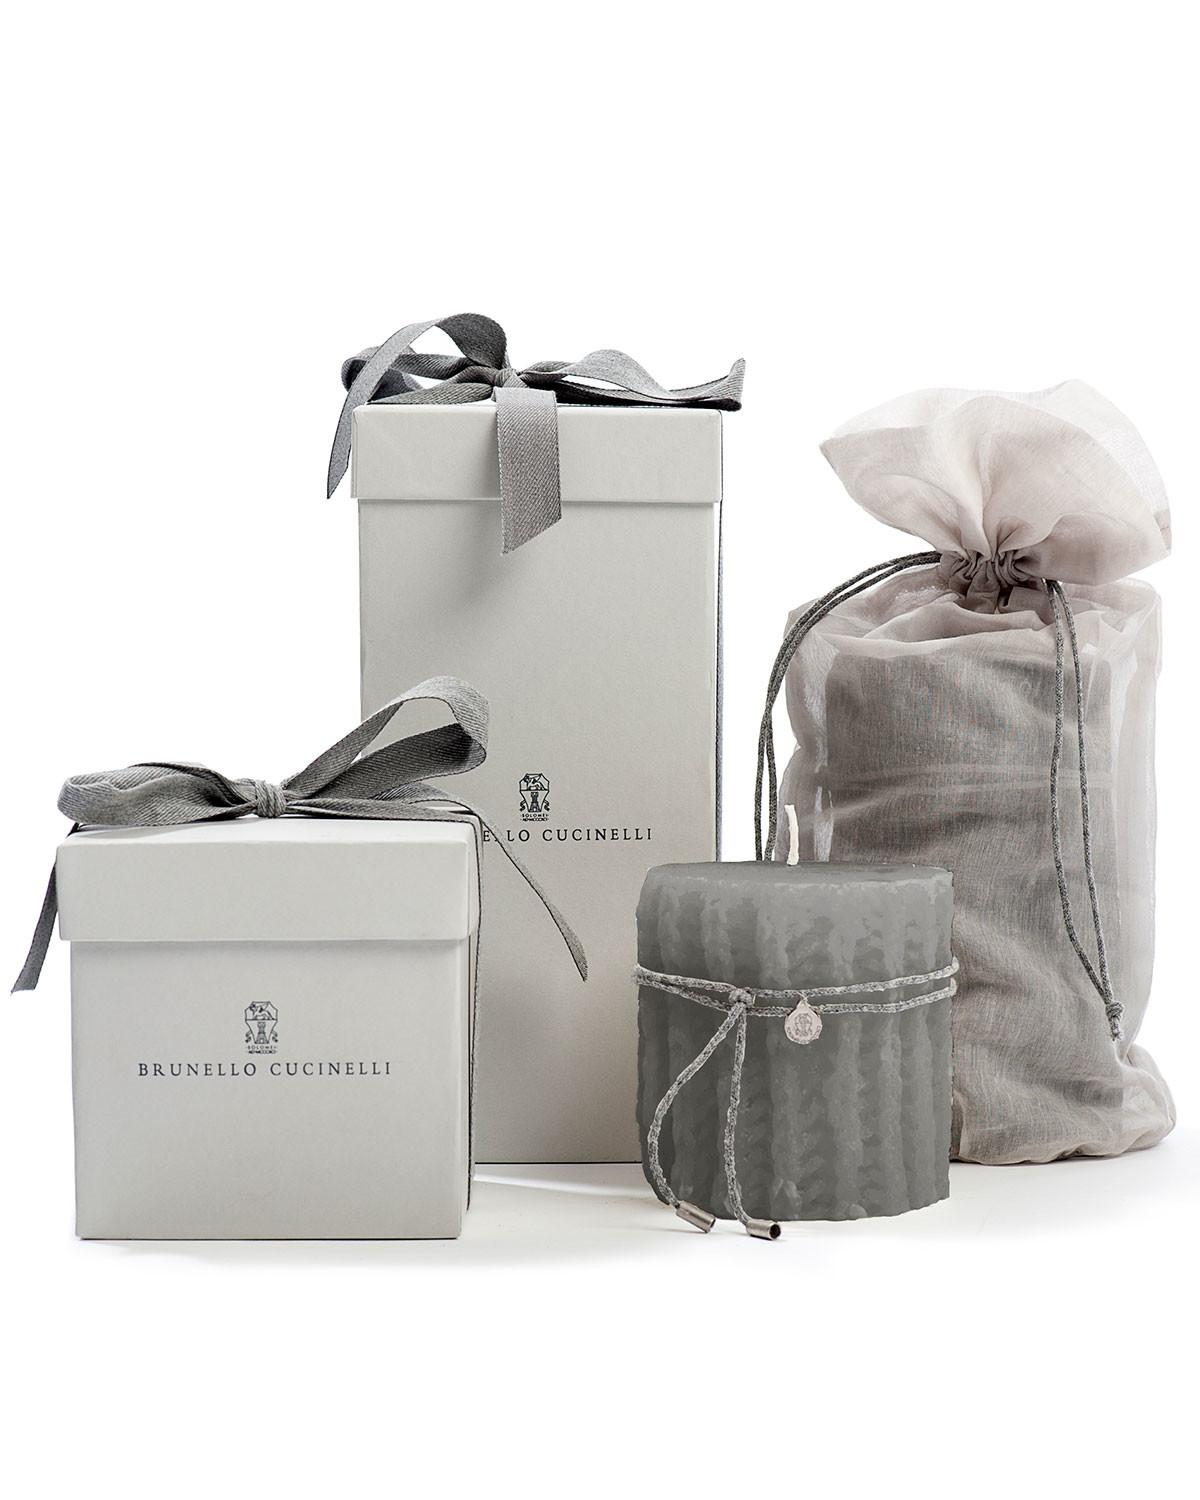 Brunello Cucinelli Candle Giftwrap Luxury High End